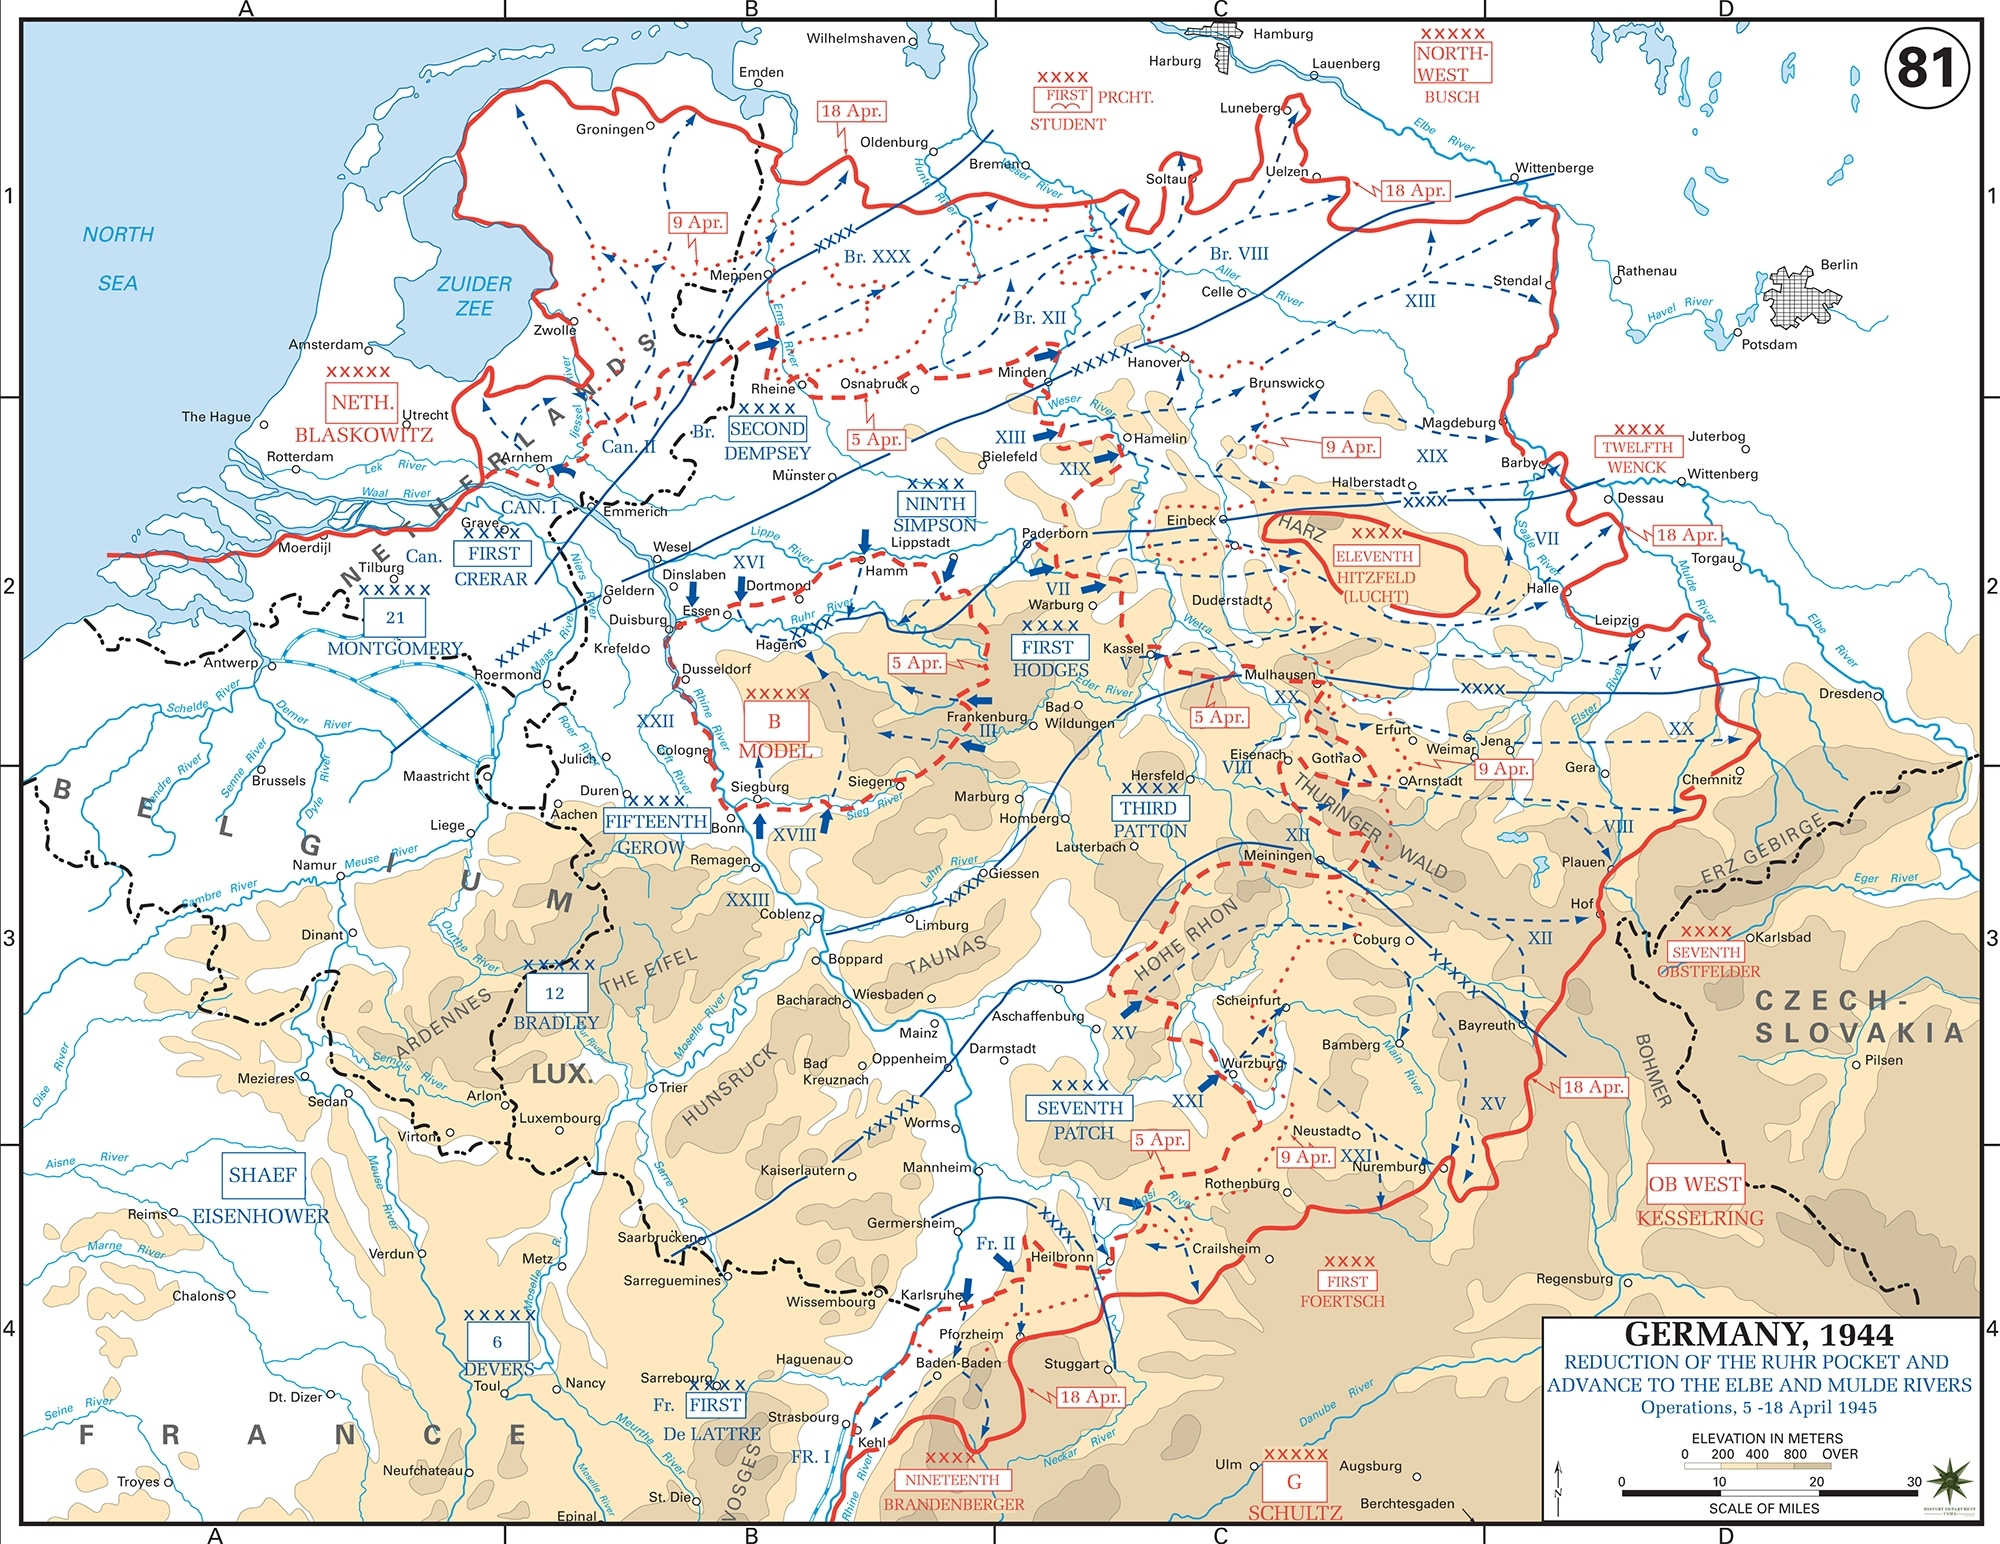 Map Of Wwii: Germany April 1945 regarding Map Of Germany During World War Two